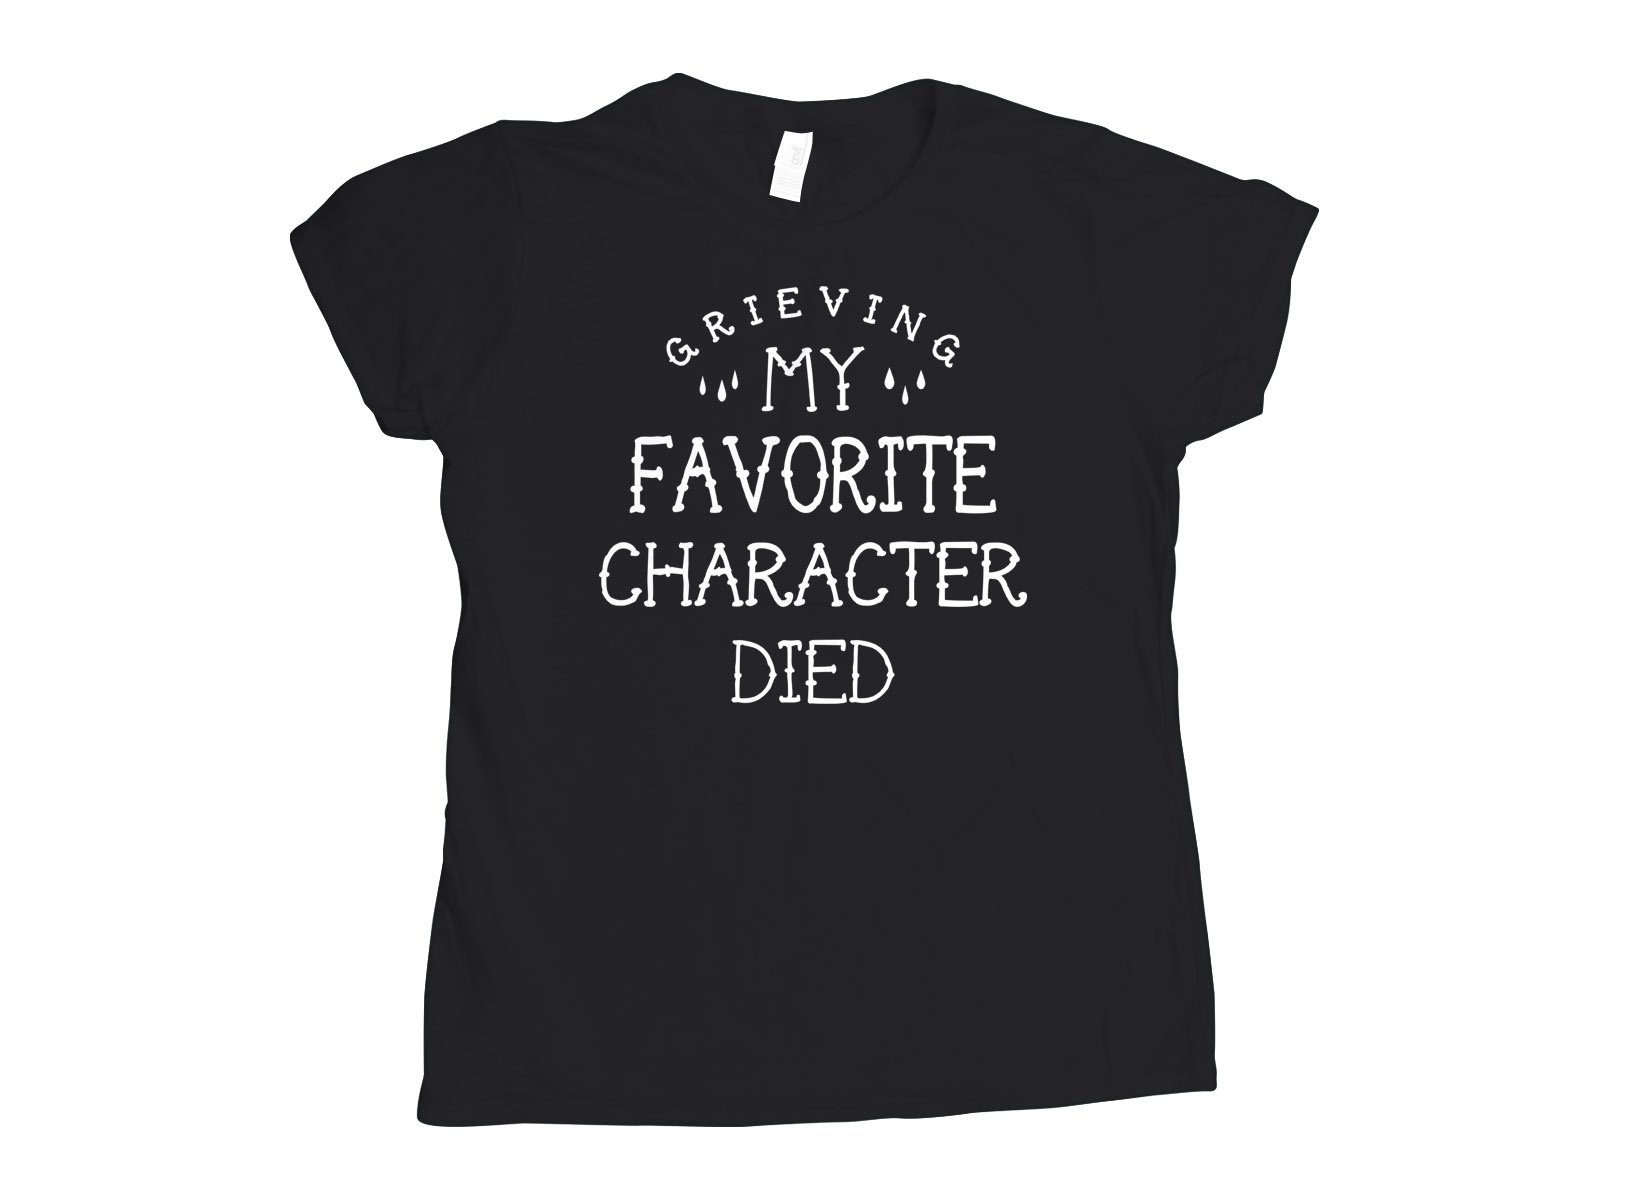 My Favorite Character Died on Womens T-Shirt